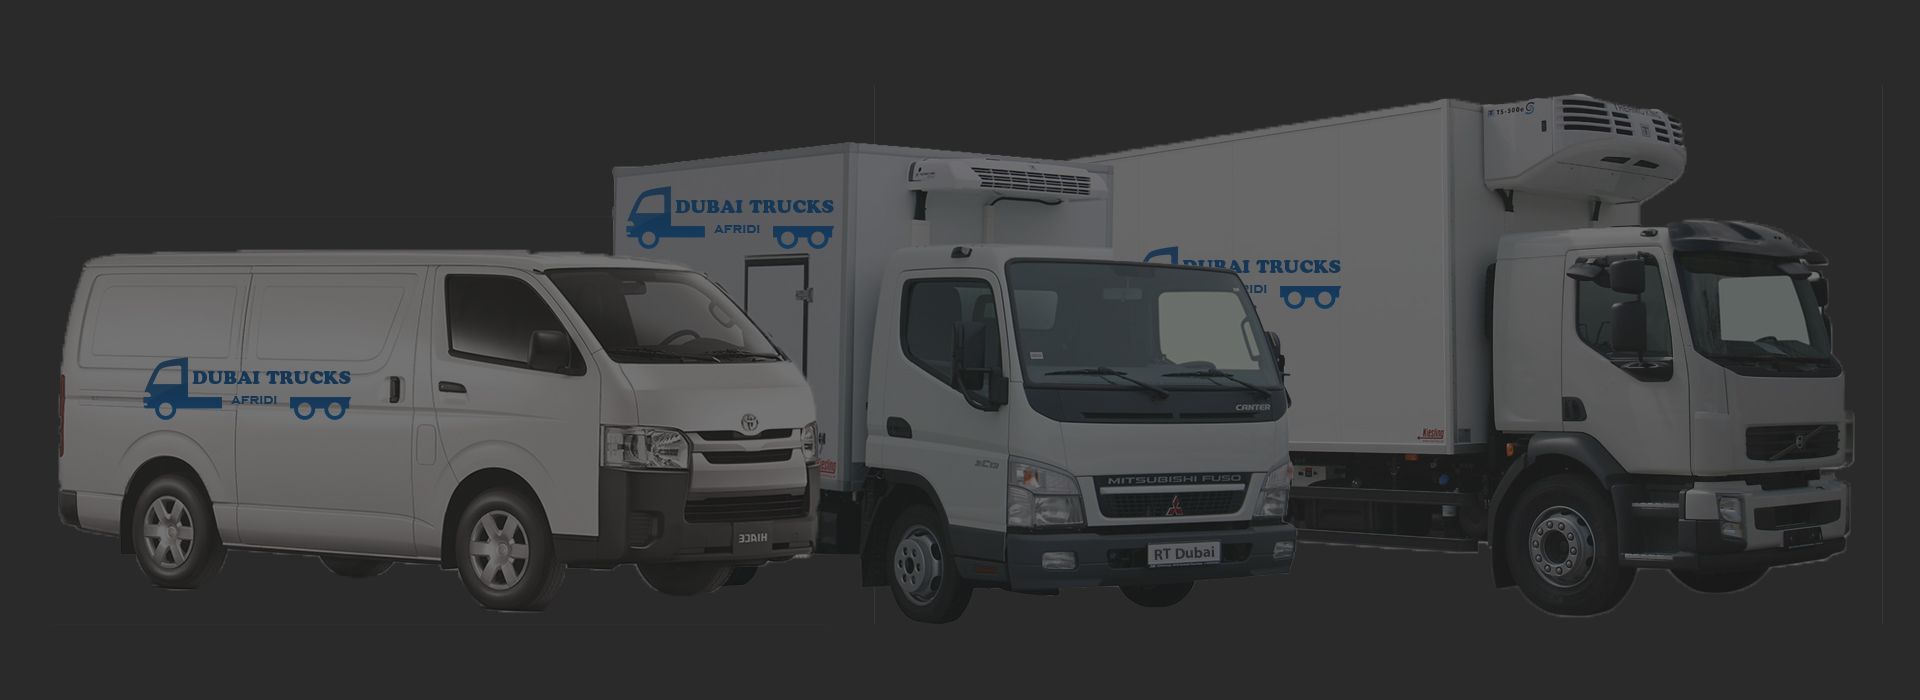 Refrigerated Truck Rental Dubai